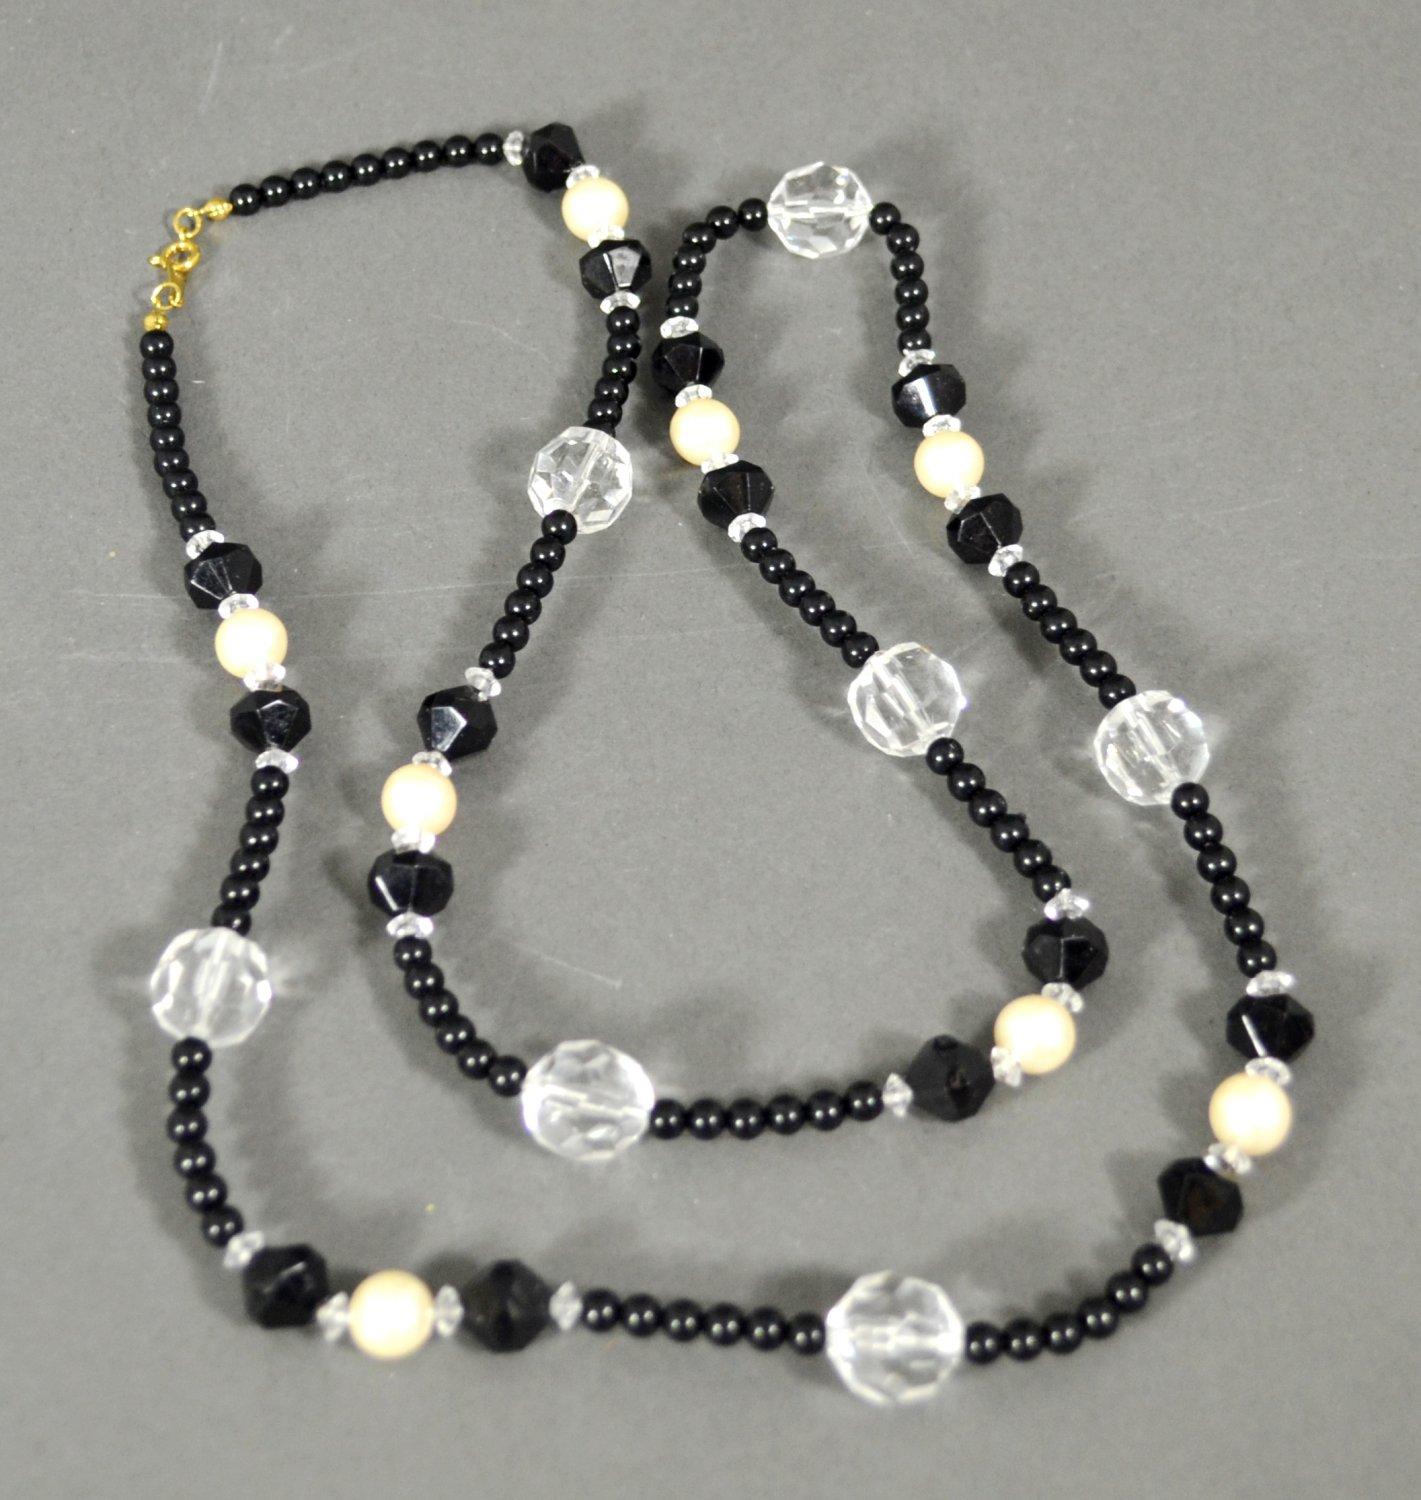 1989 Avon Fabulous Facets Necklace w/ Black Clear White Beads